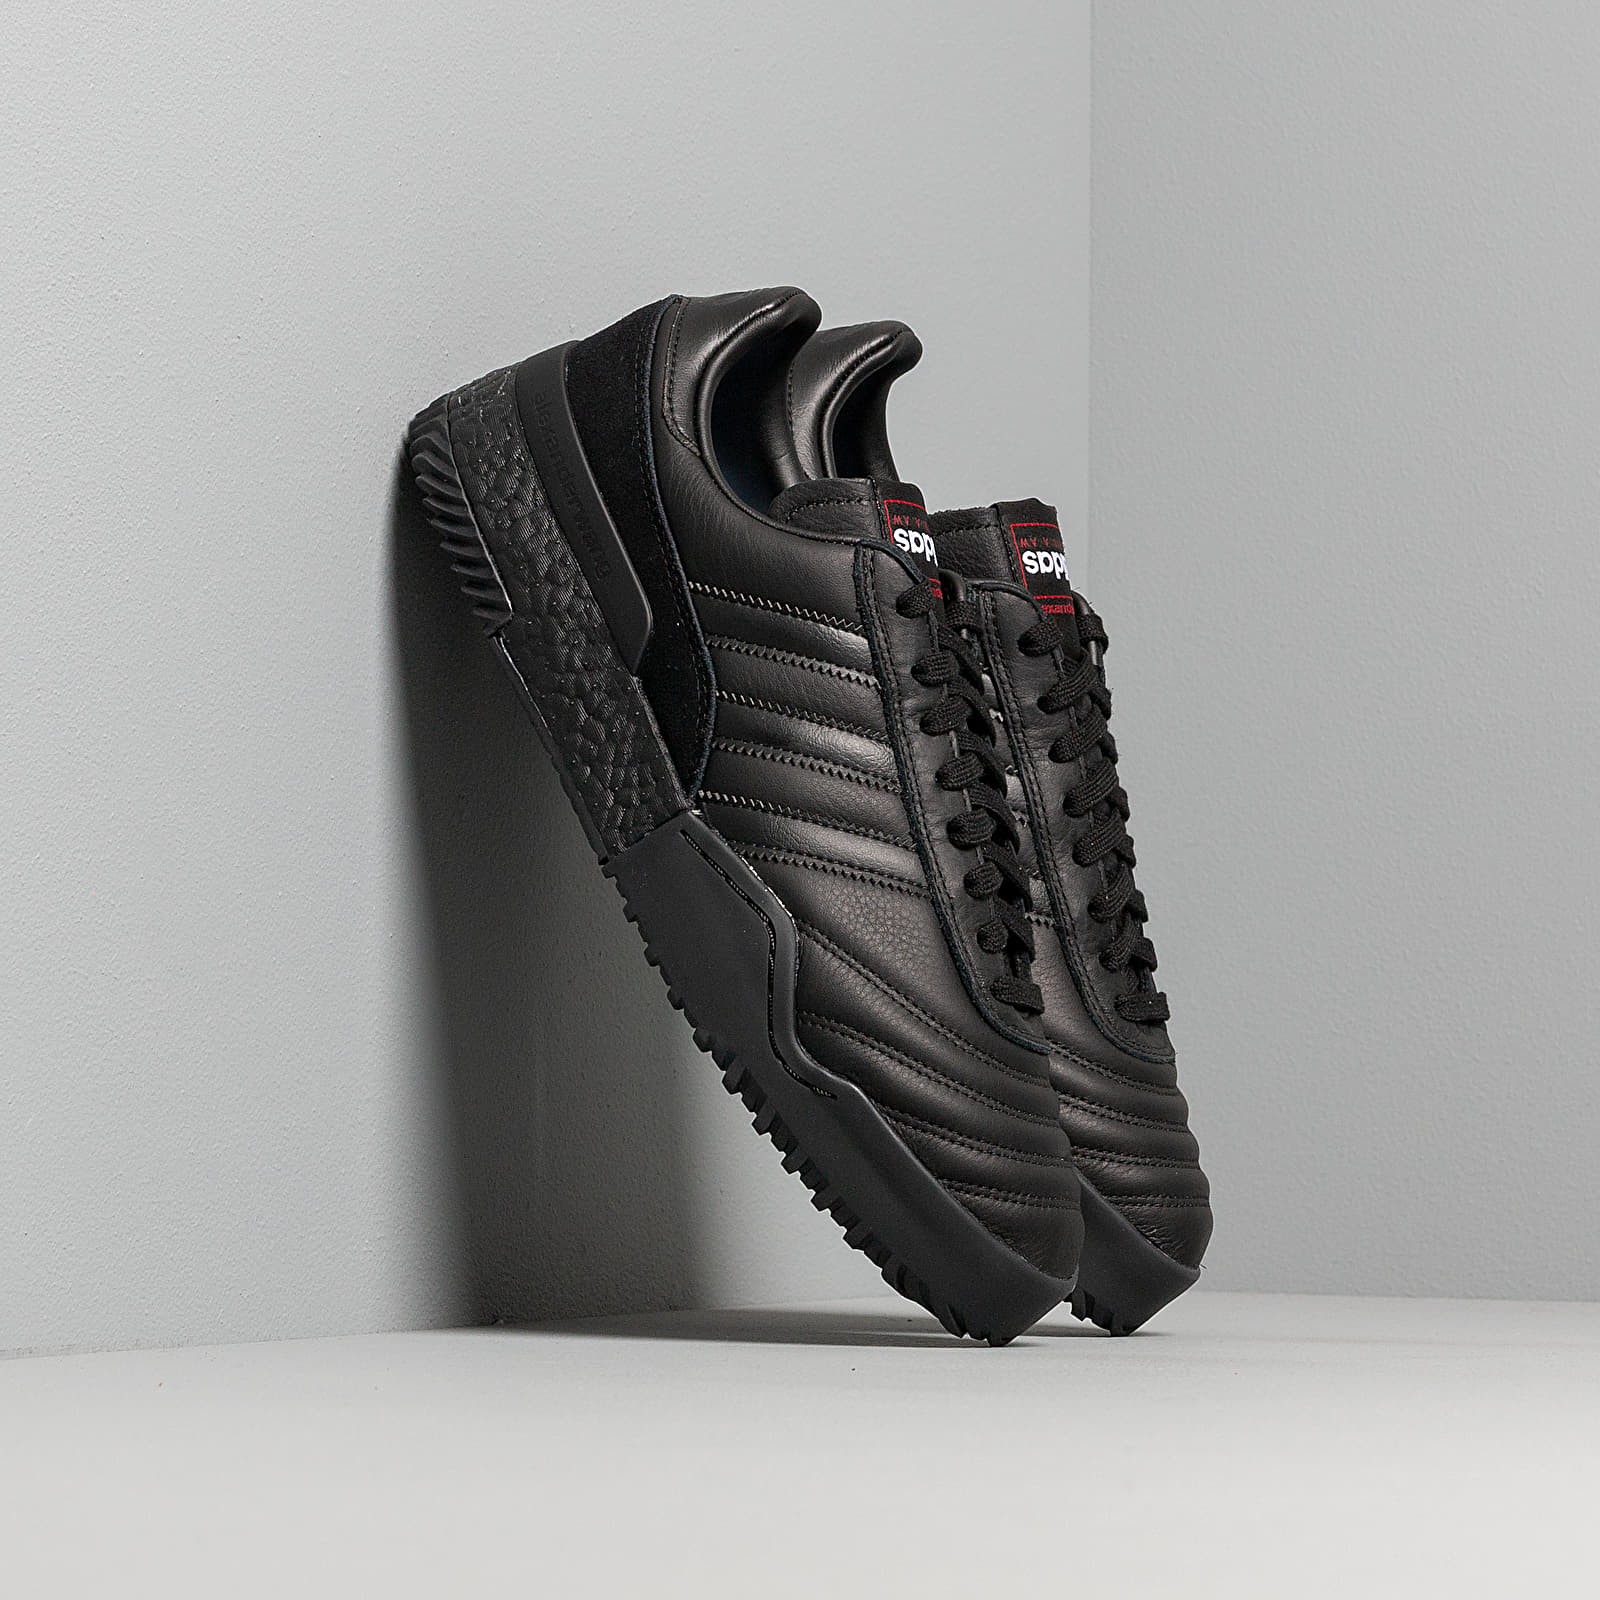 Chaussures et baskets homme adidas x Alexander Wang Bball Soccer Core Black/ Core Black/ Core Black